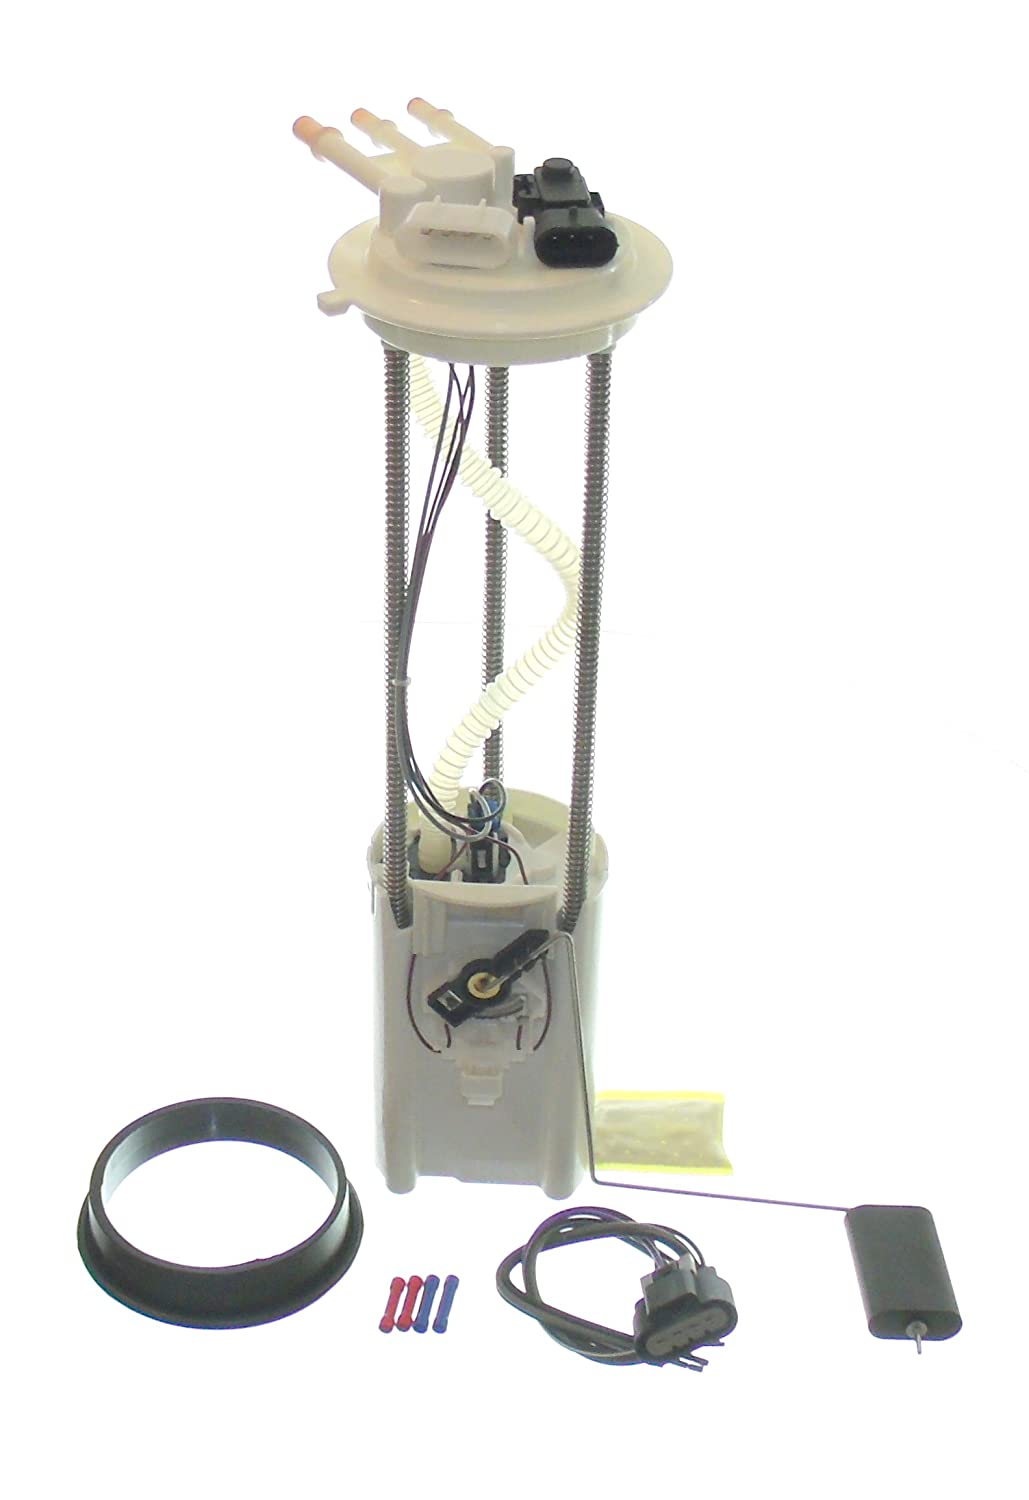 Amazon.com: G3511A Fuel Pump Module Assembly, W/2 Electrical ...